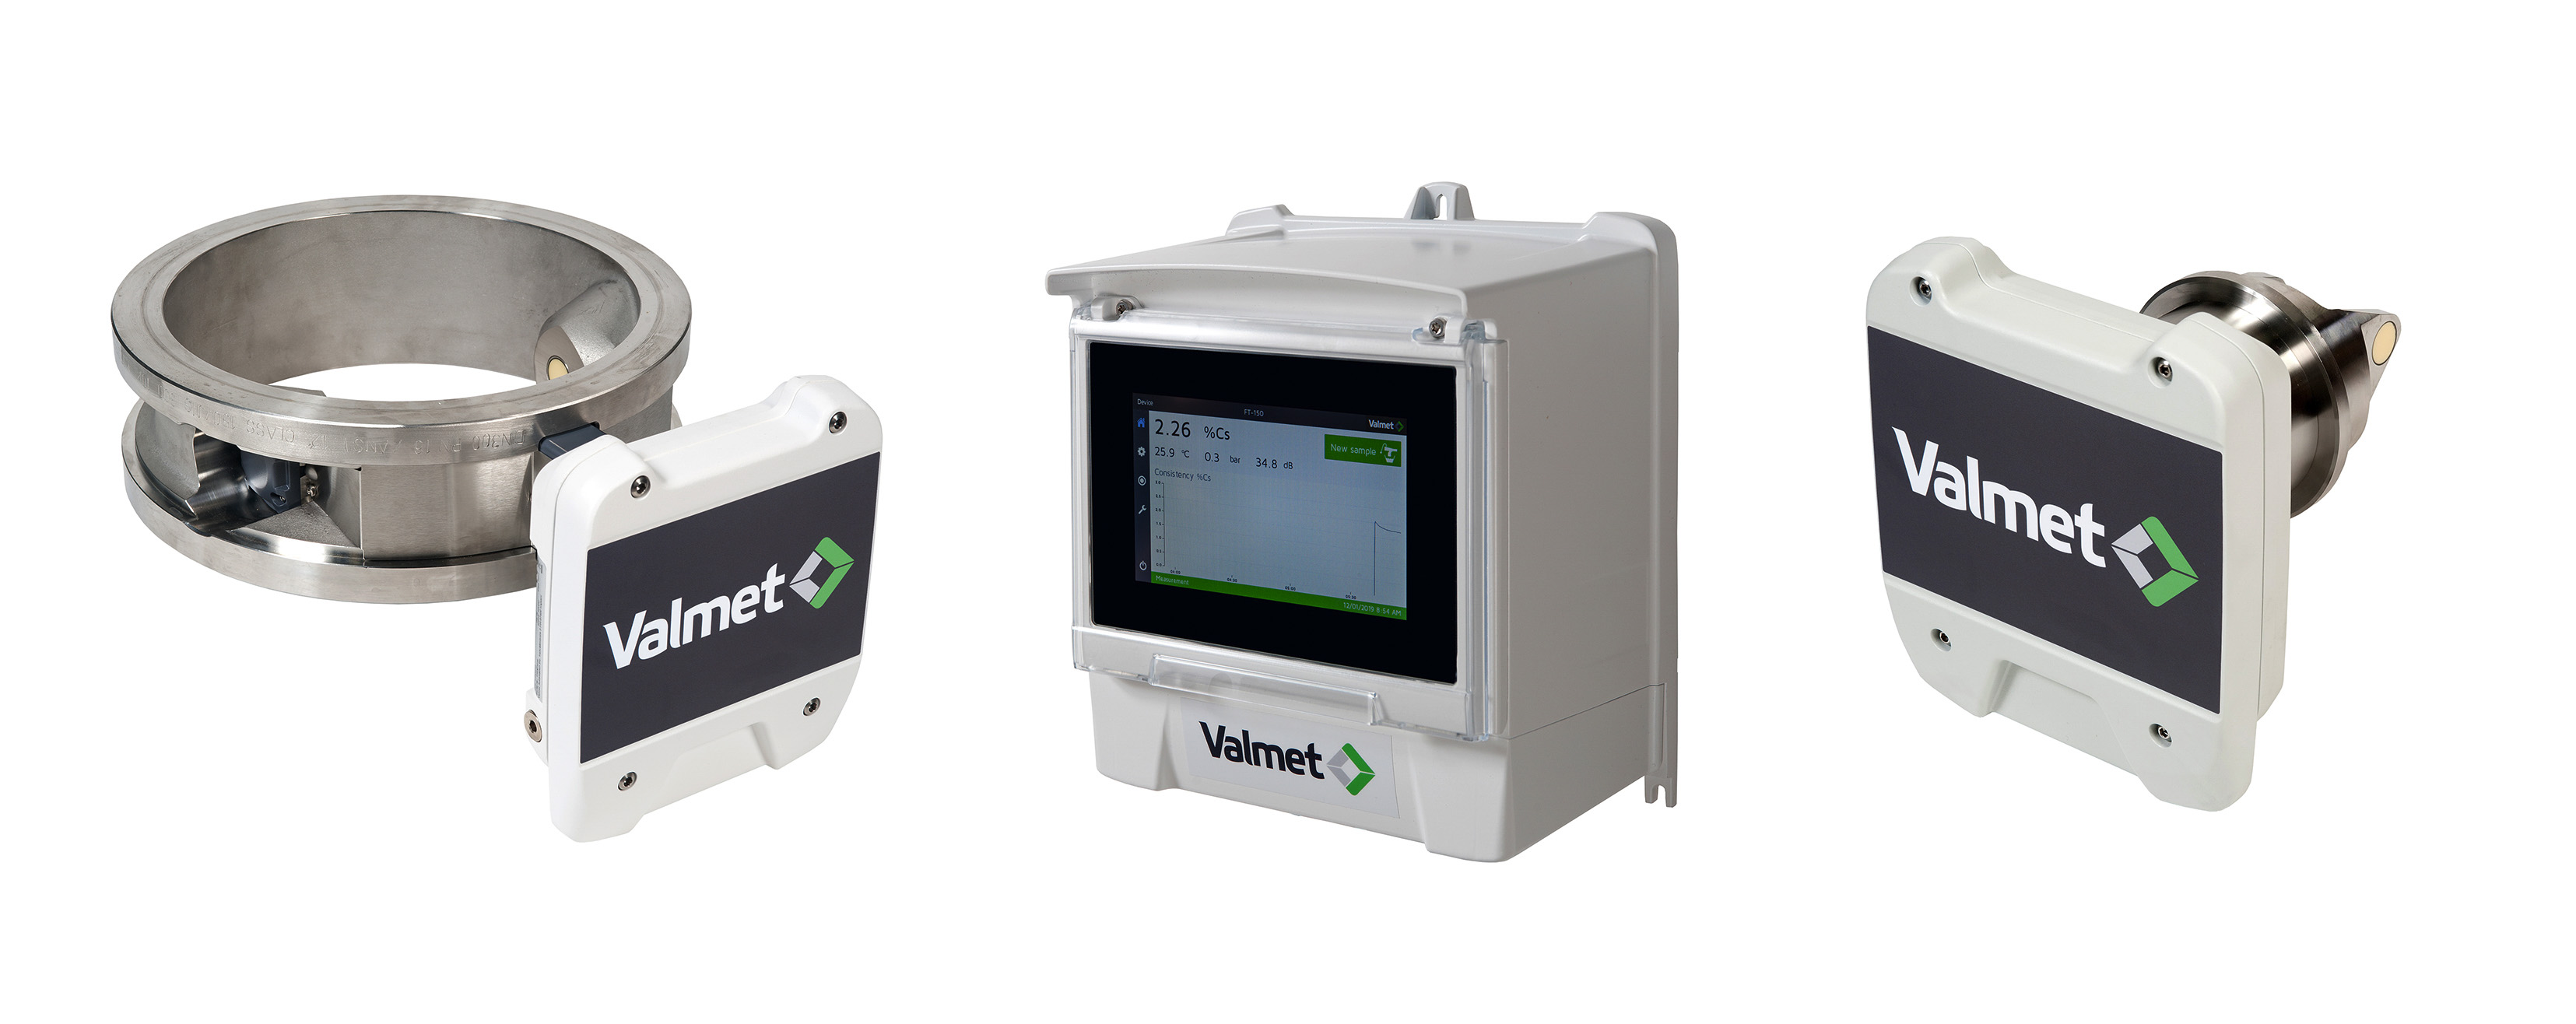 Valmet launches a completely redesigned Valmet Total Solids Measurement.